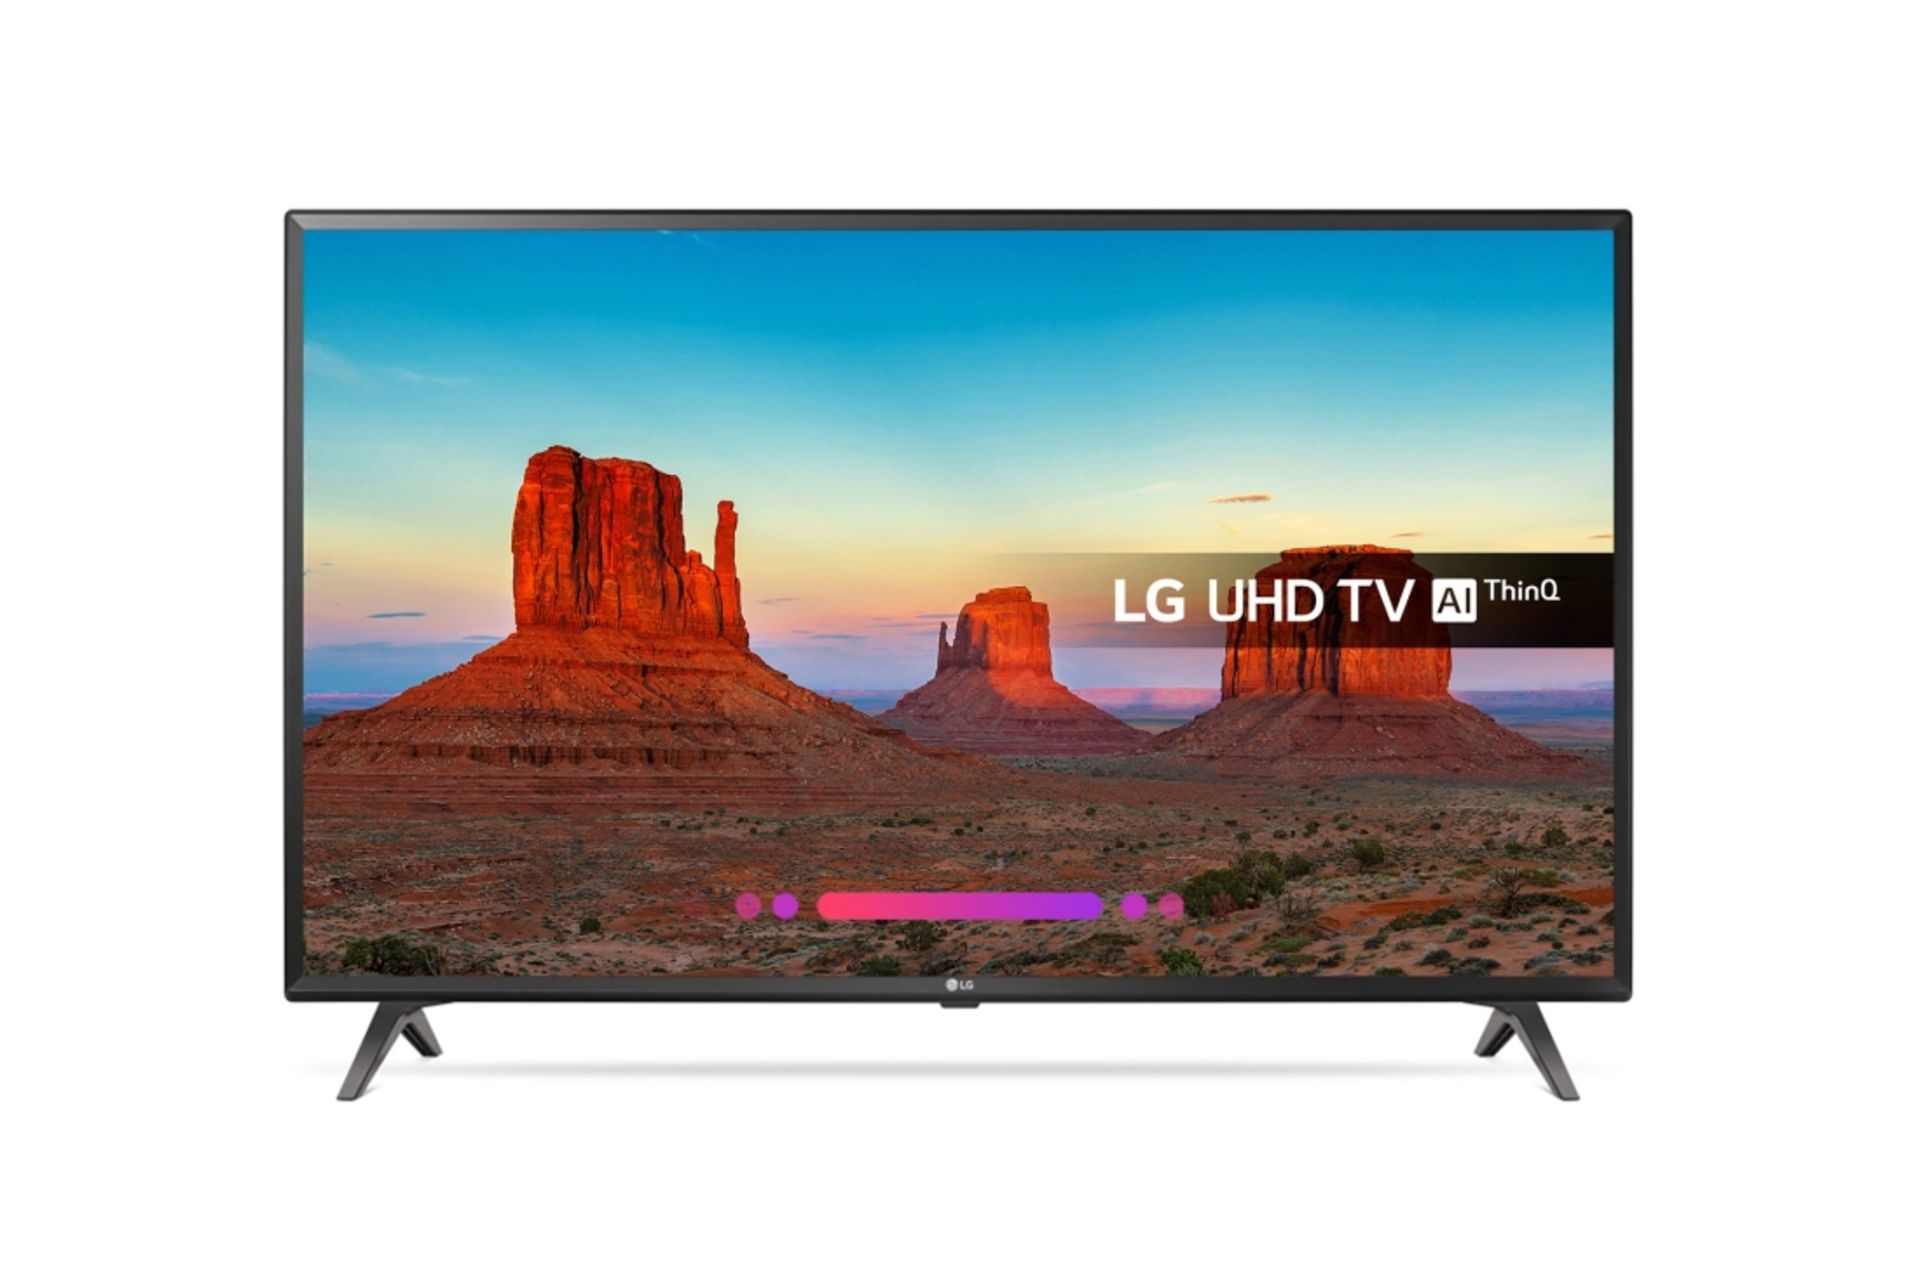 Lotto 30020 - V Grade A LG 43 Inch ACTIVE HDR 4K ULTRA HD LED SMART TV WITH FREEVIEW HD & WEBOS 4.0 & WIFI - AI TV